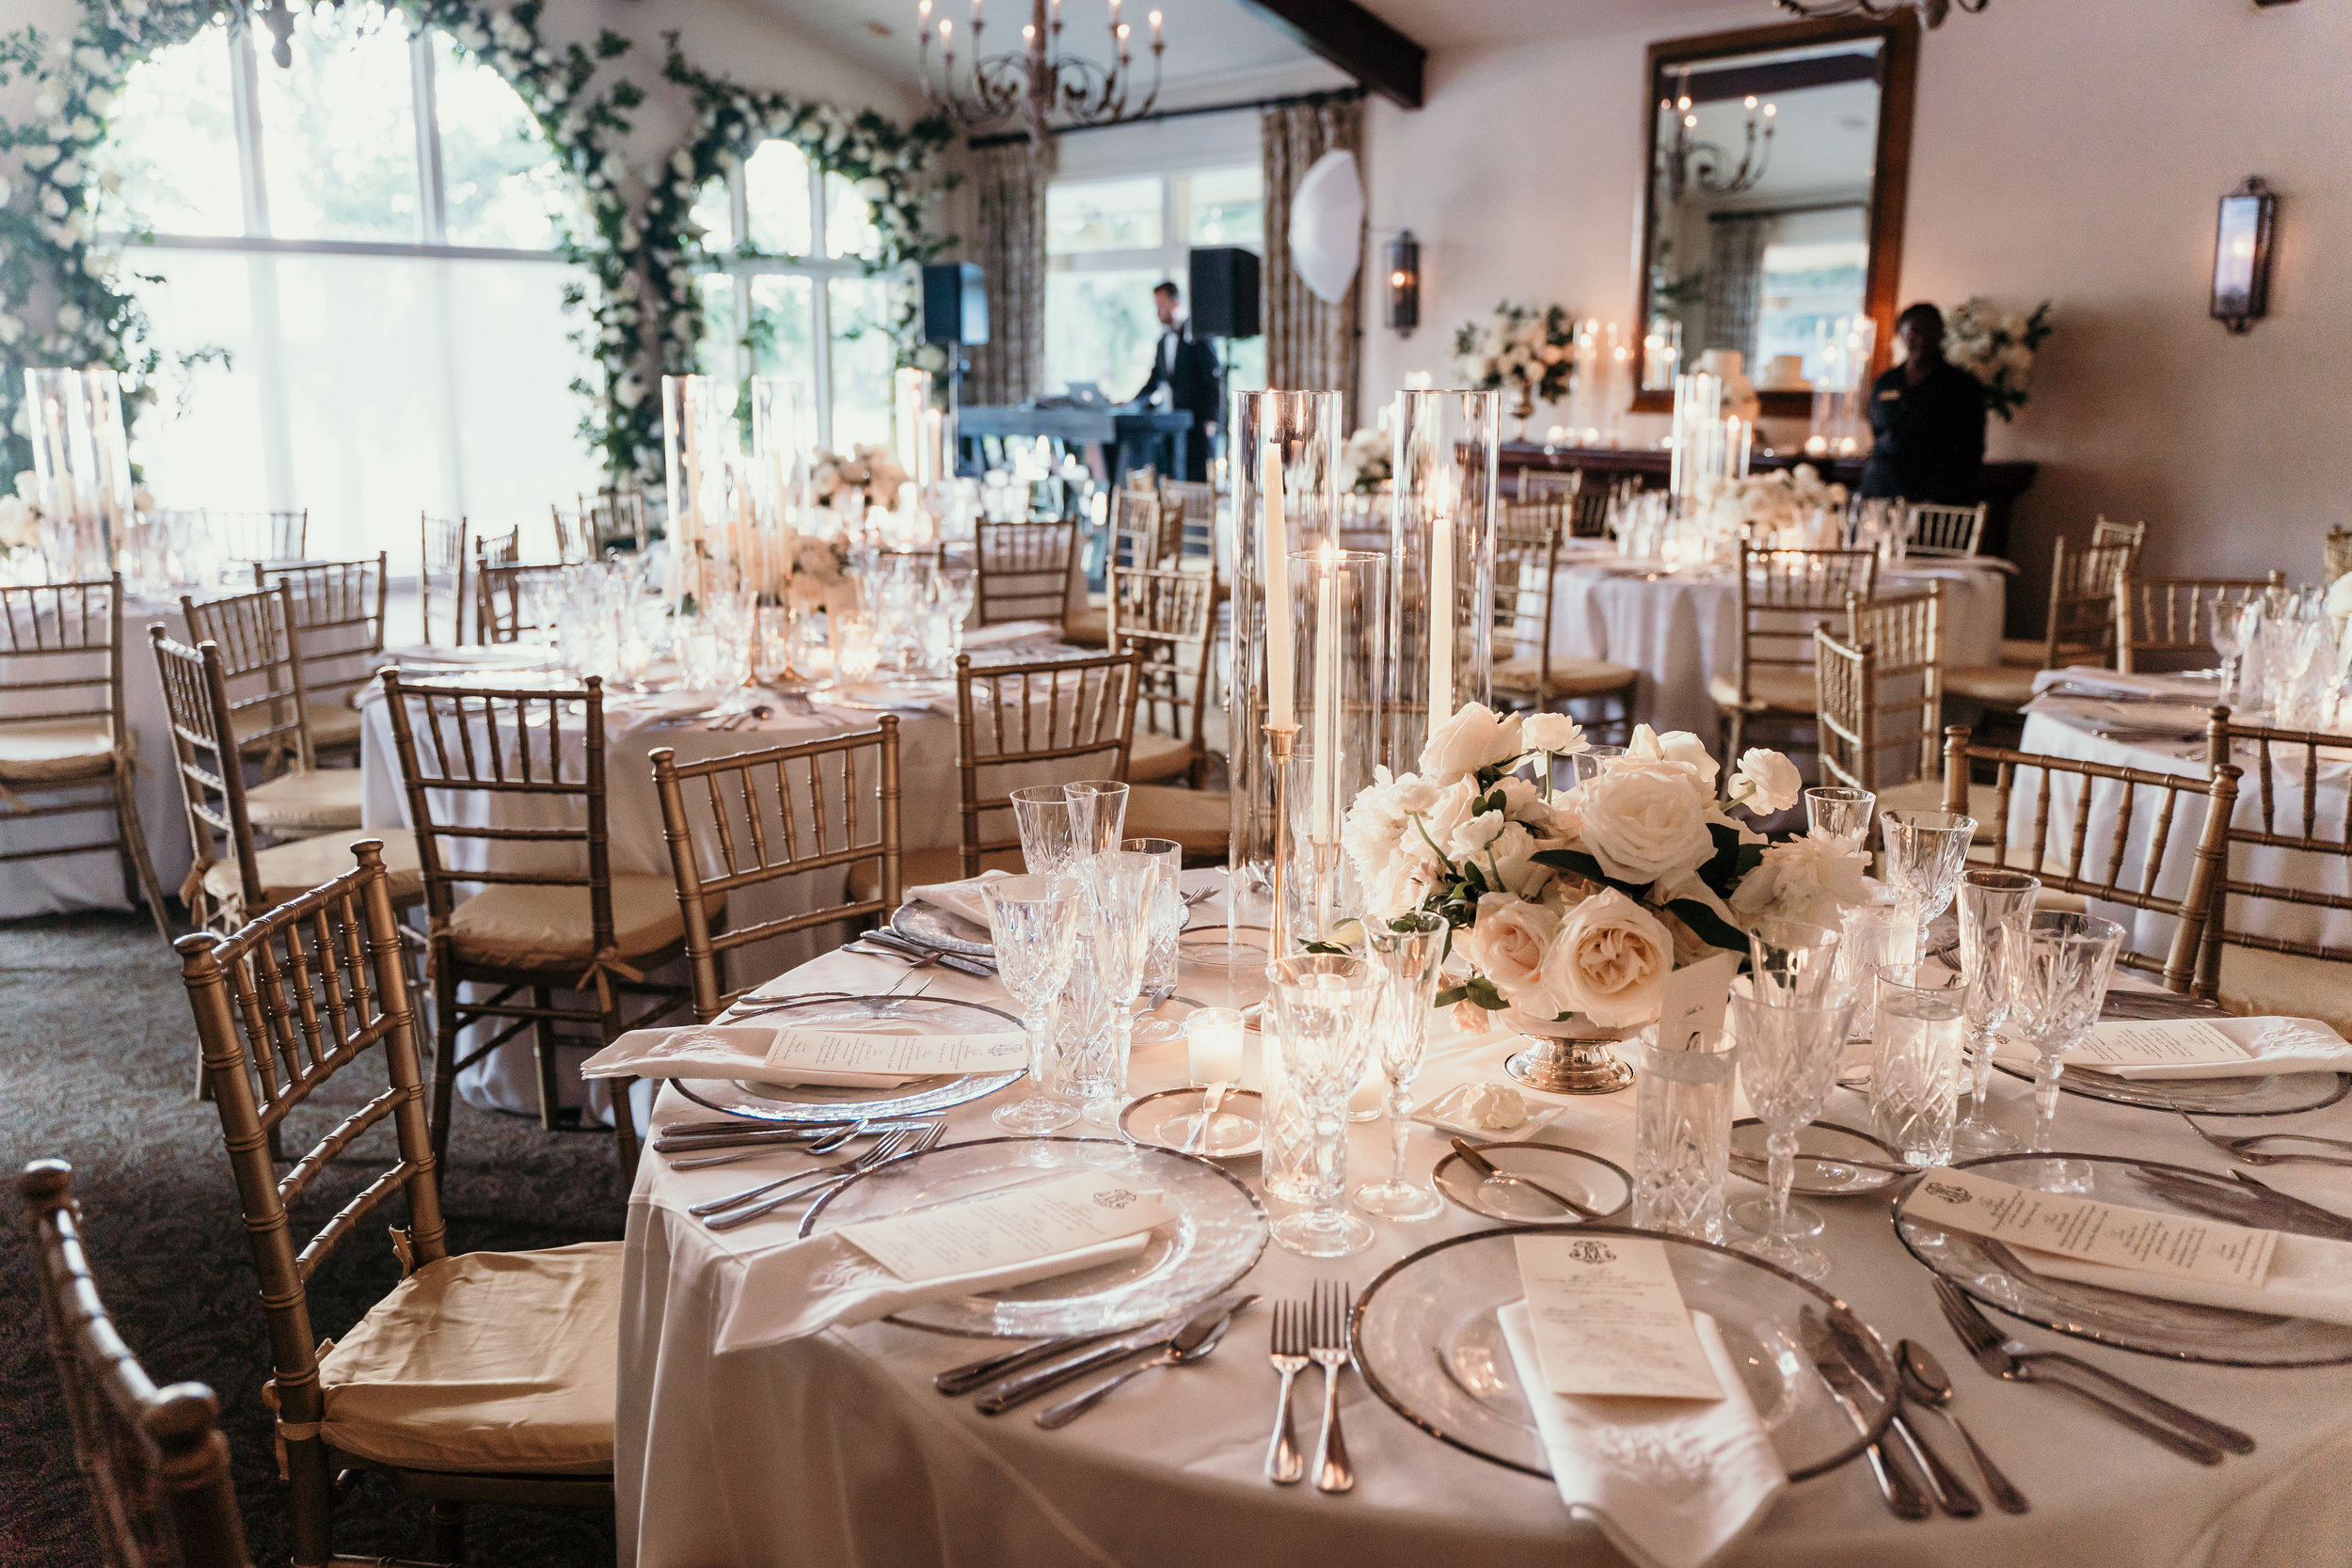 Winter Park Racquet Club Wedding Reception Planning & Design by Blue Ribbon Weddings